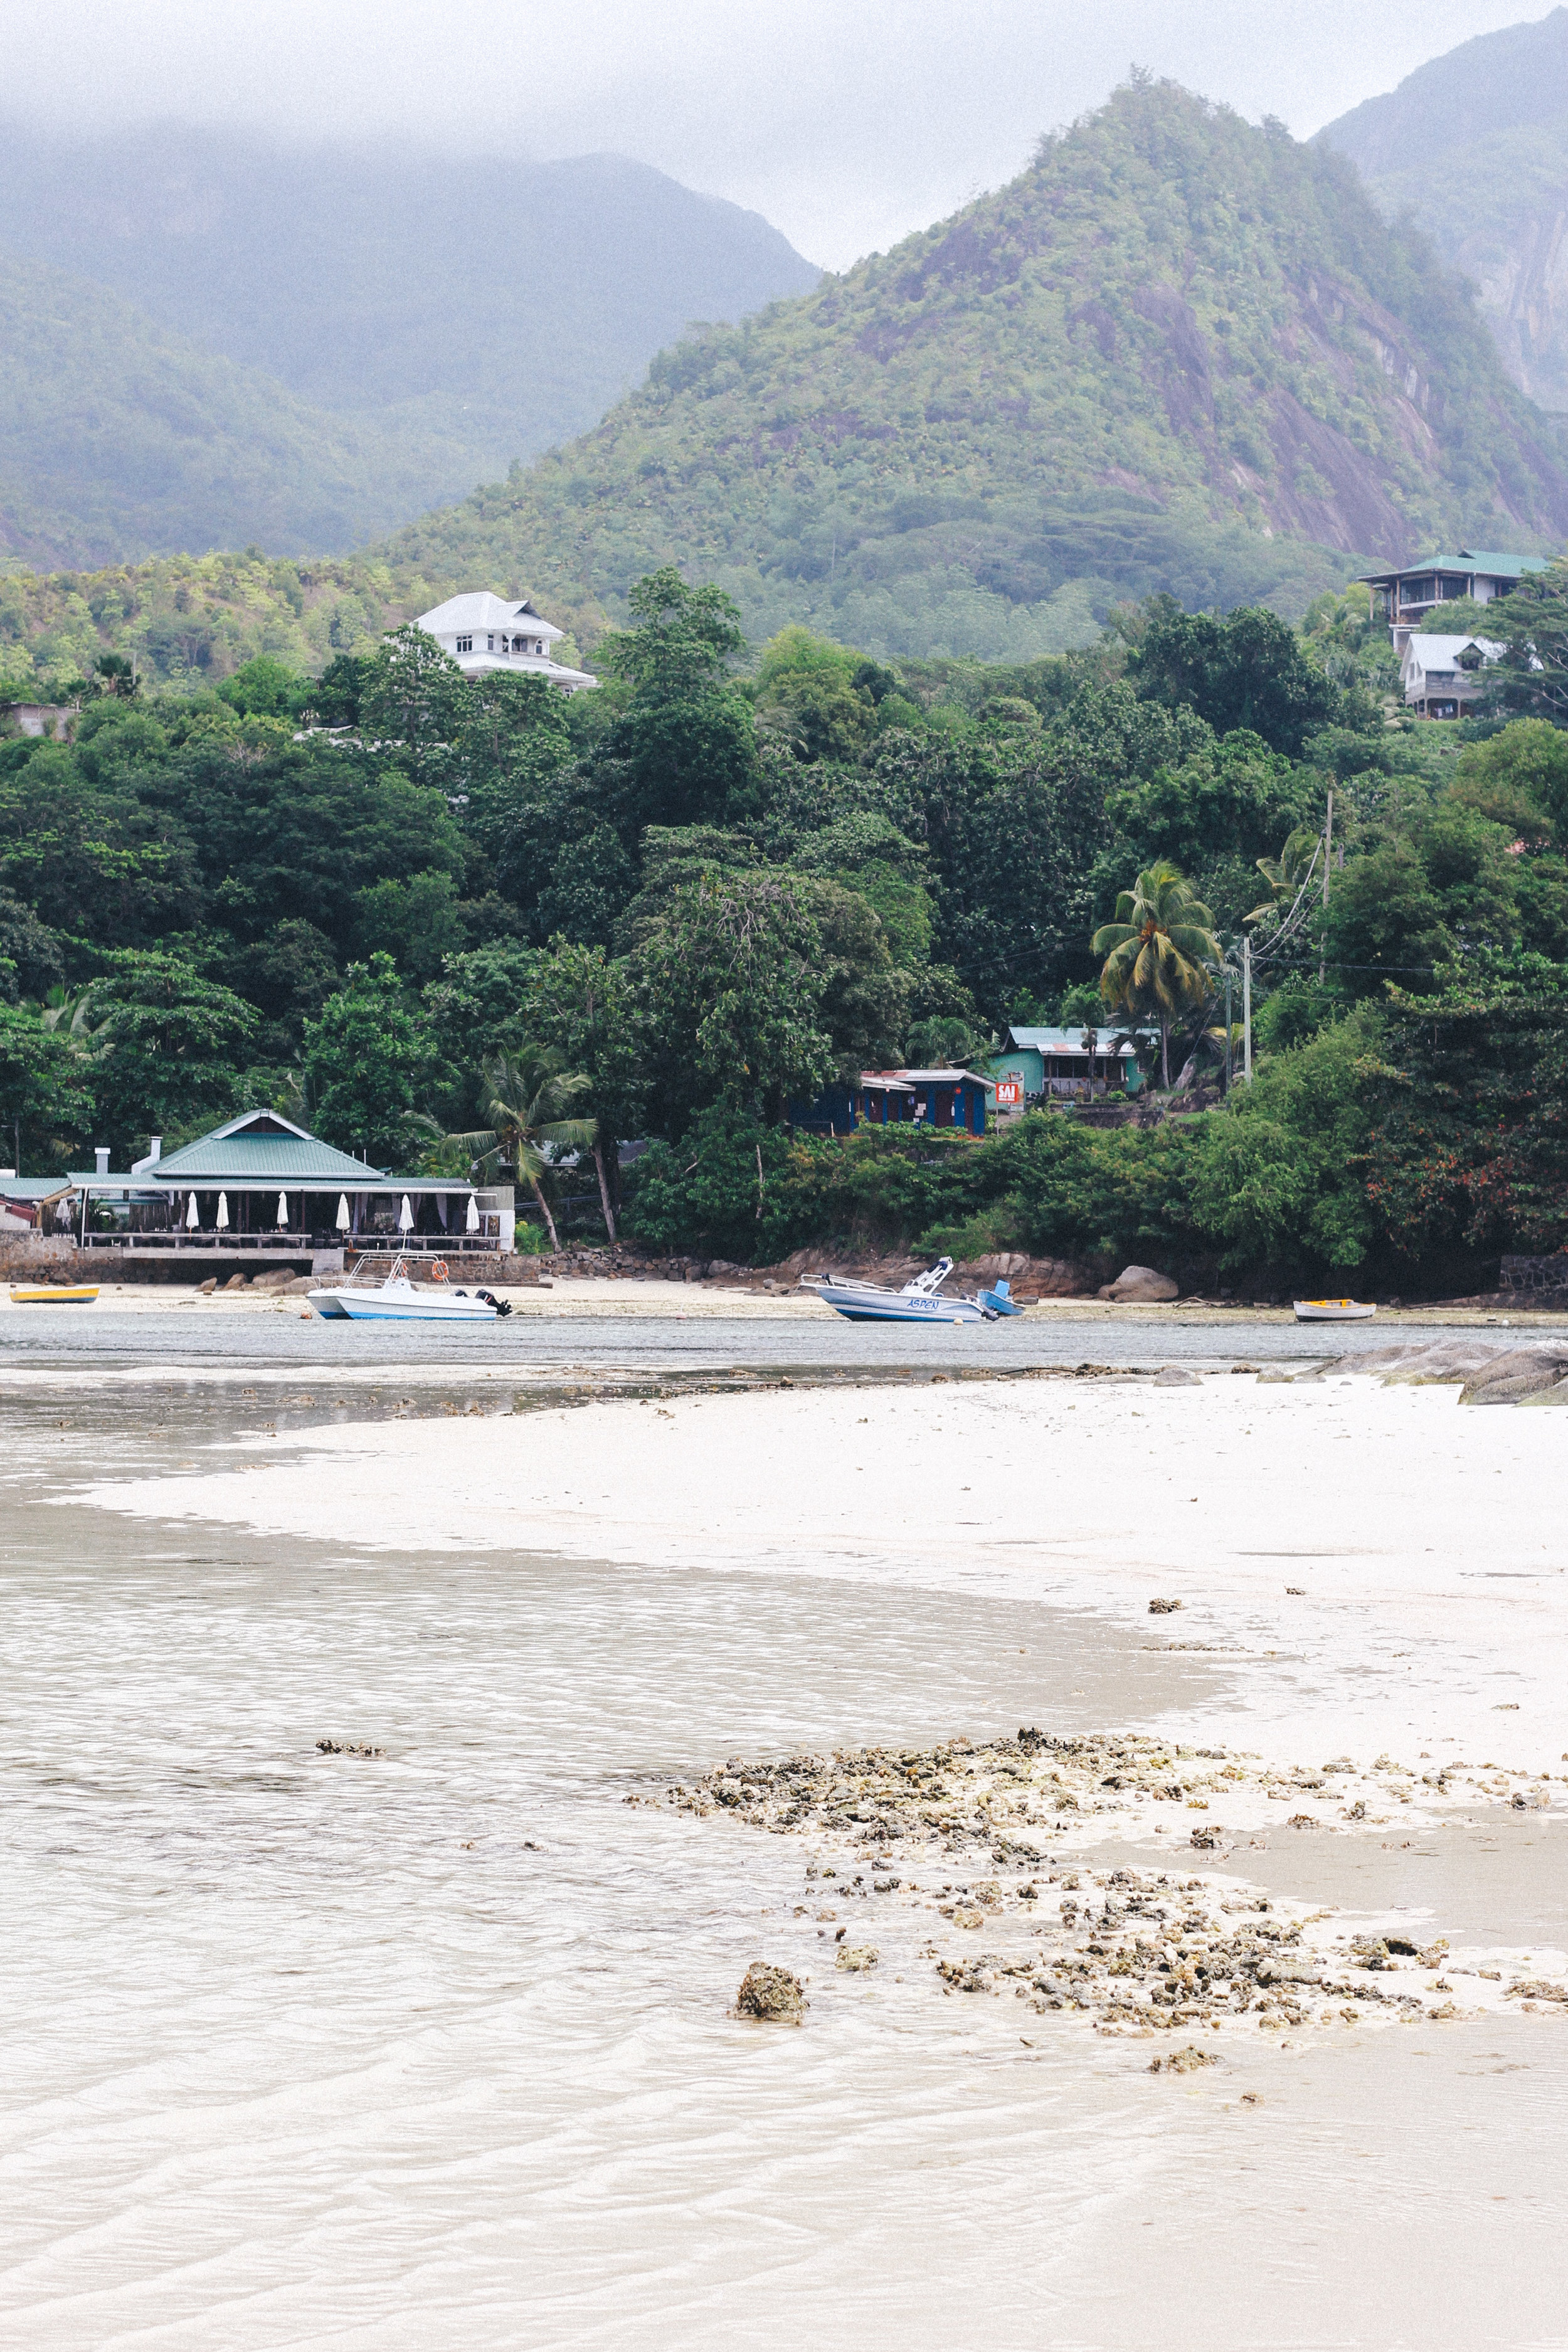 Looking back on Mahe from L'islette